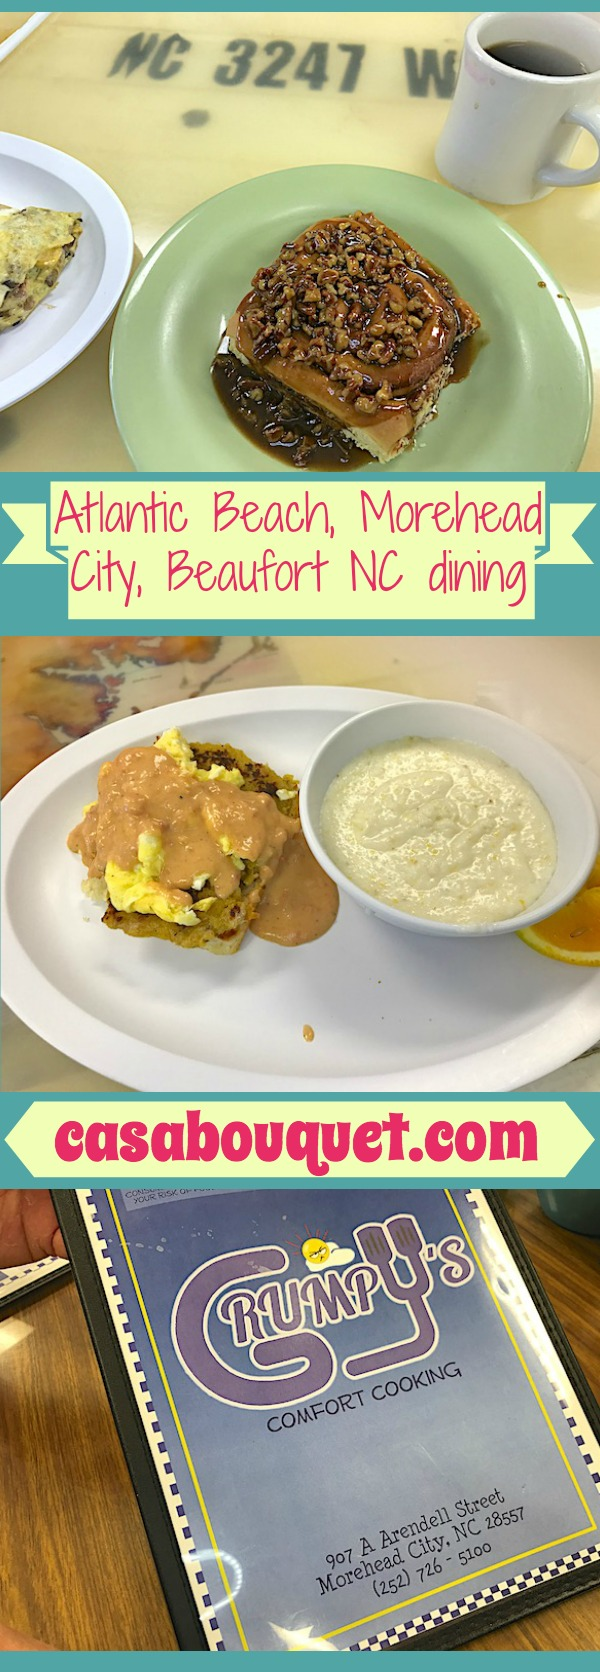 Atlantic Beach, Morehead City, and Beaufort in North Carolina are part of the Crystal Coast. Eating is a great activity there. Join me for breakfast!